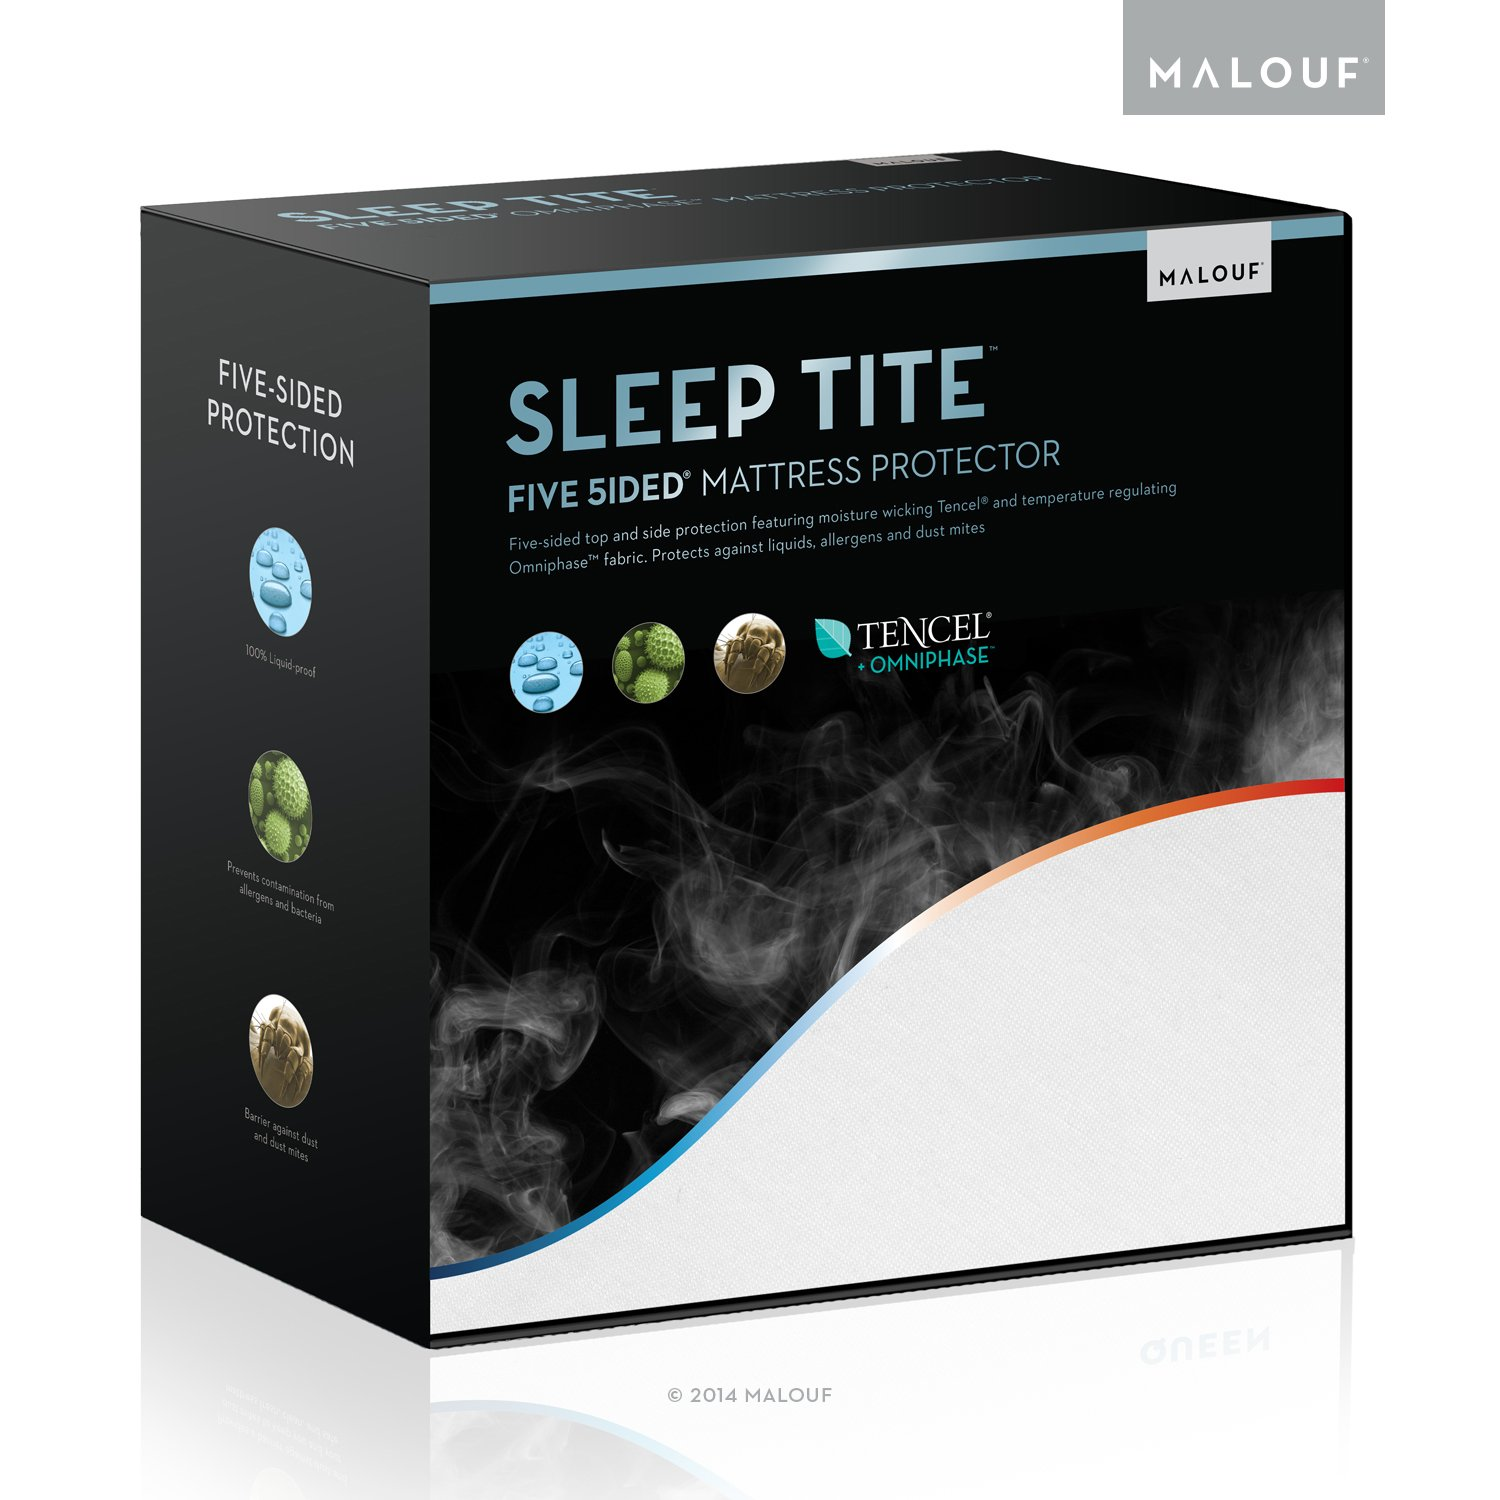 SLEEP TITE FIVE-5IDED Hypoallergenic Mattress Protector With OMNIPHASE and TENCEL - 100% Waterproof - Regulates Temperature - 15-Year Warranty - Vinyl Free - Queen by MALOUF